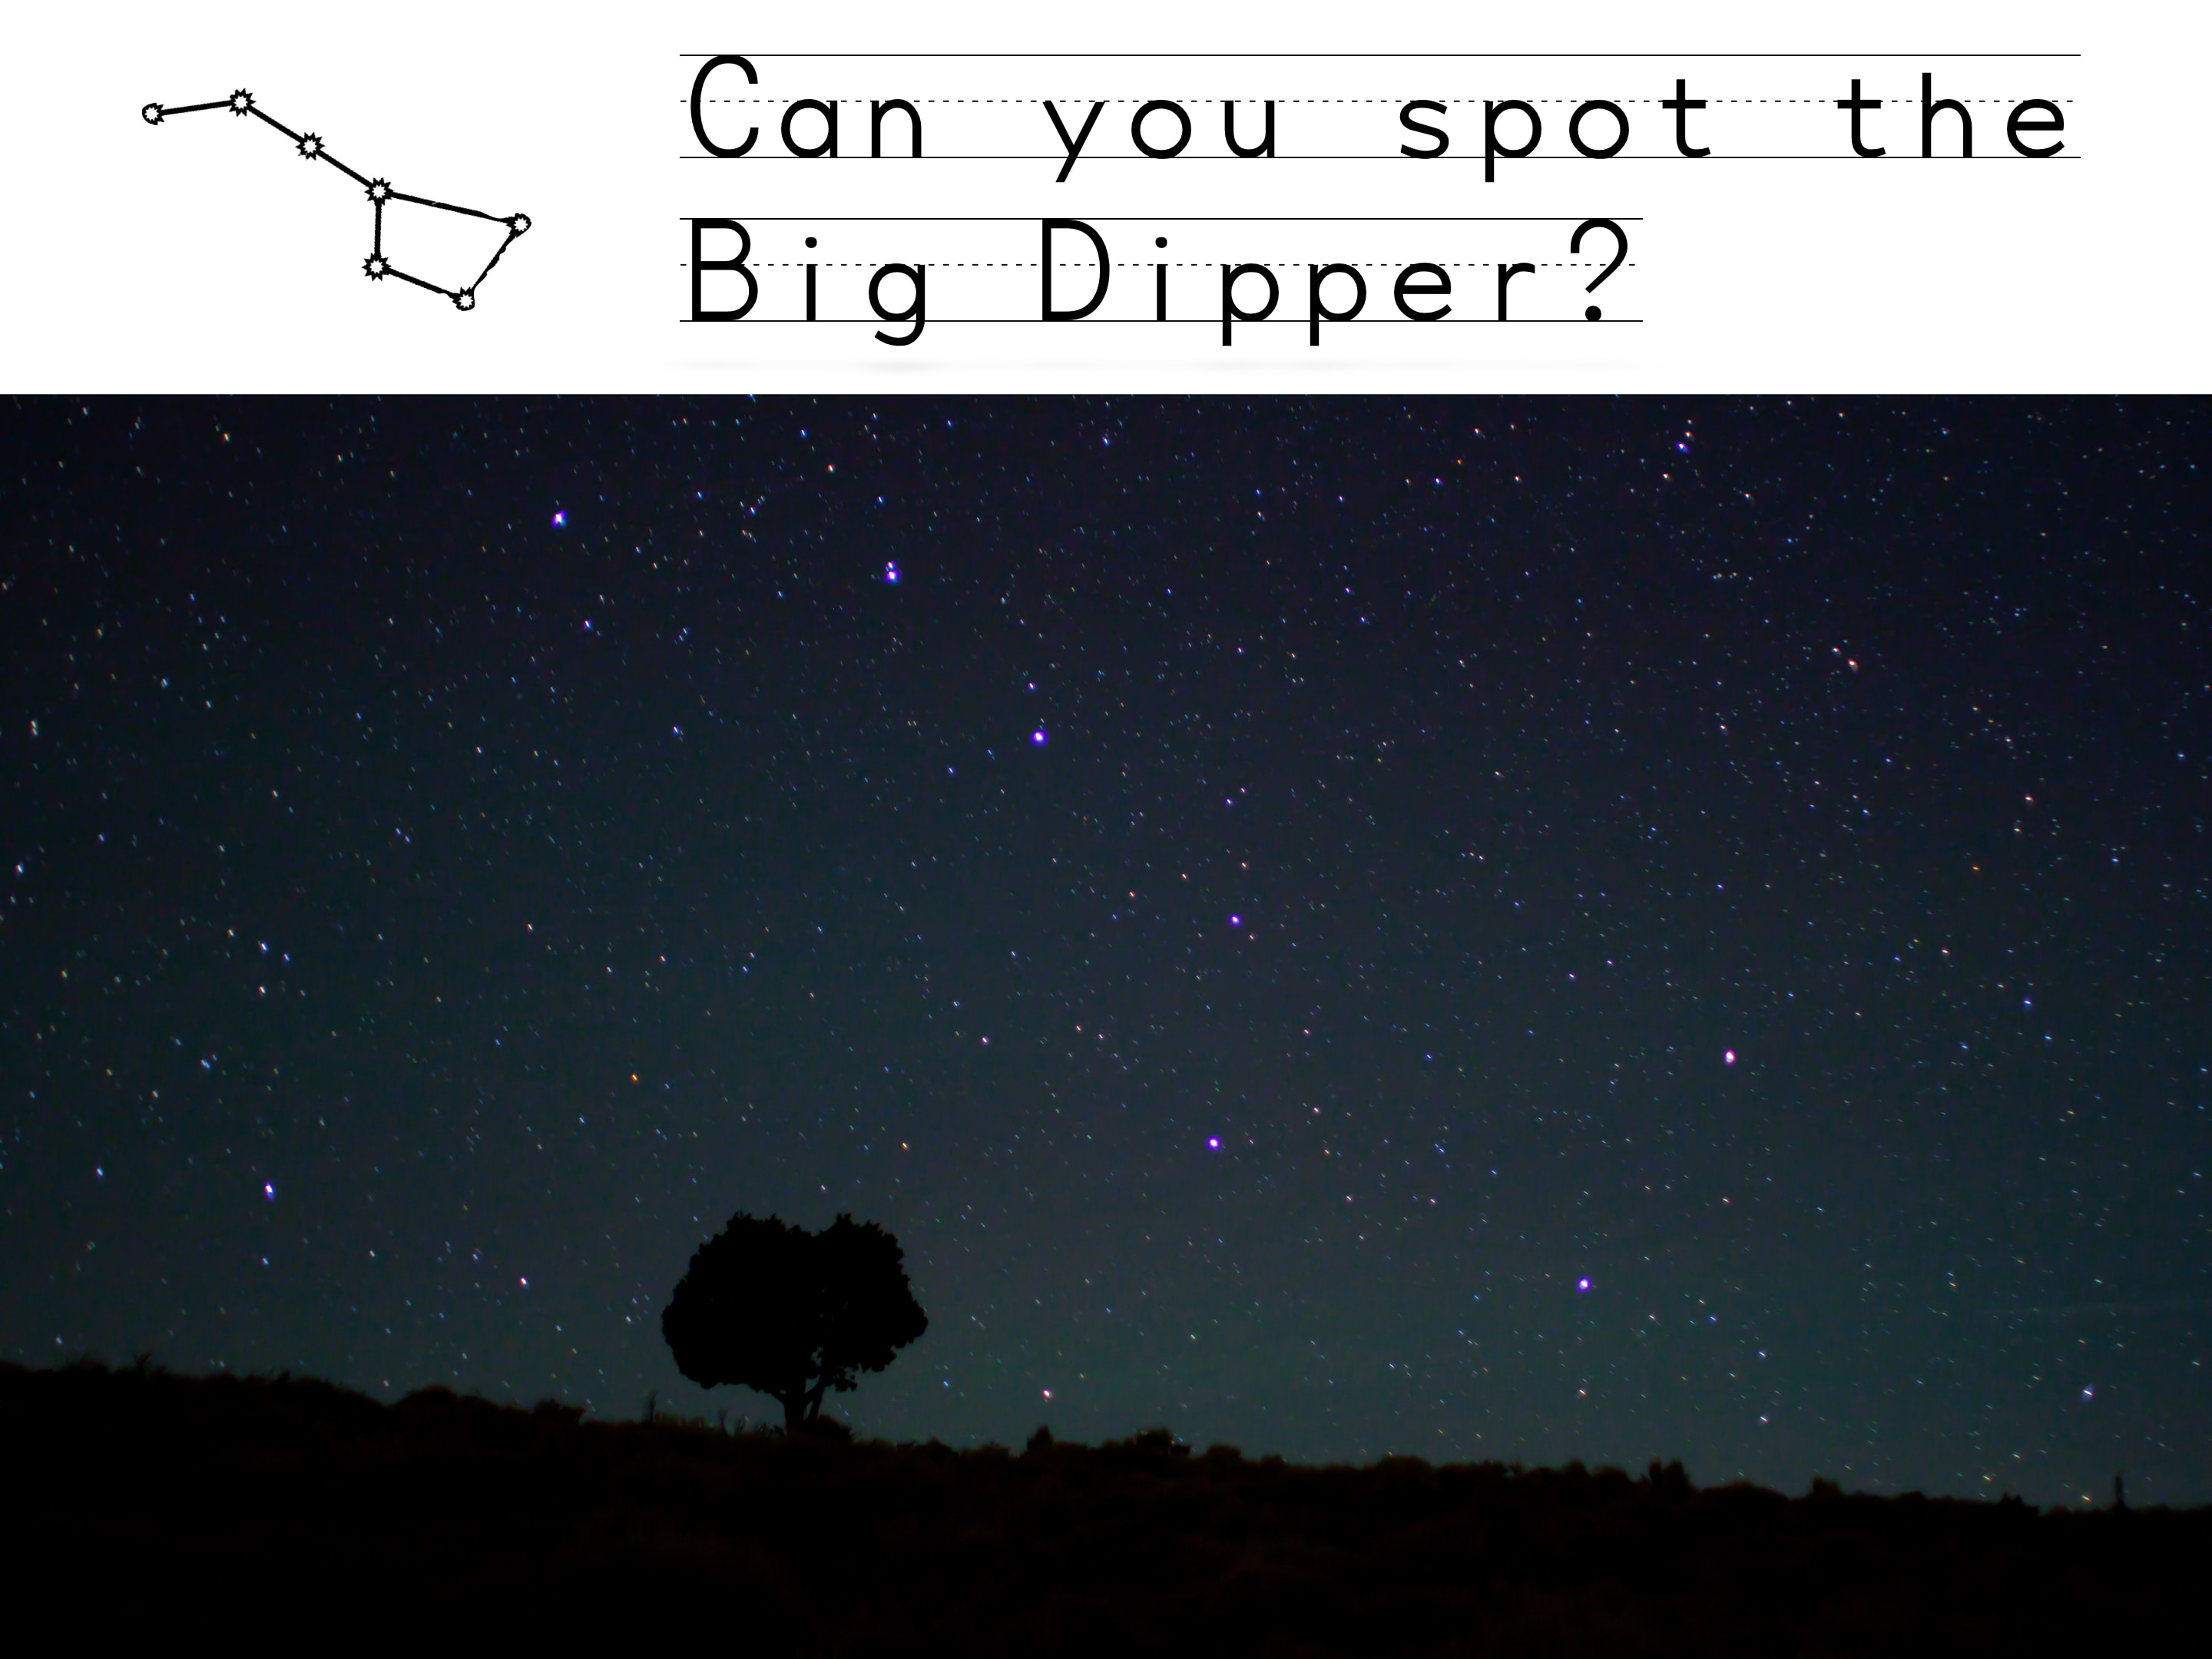 Search for Big Dipper